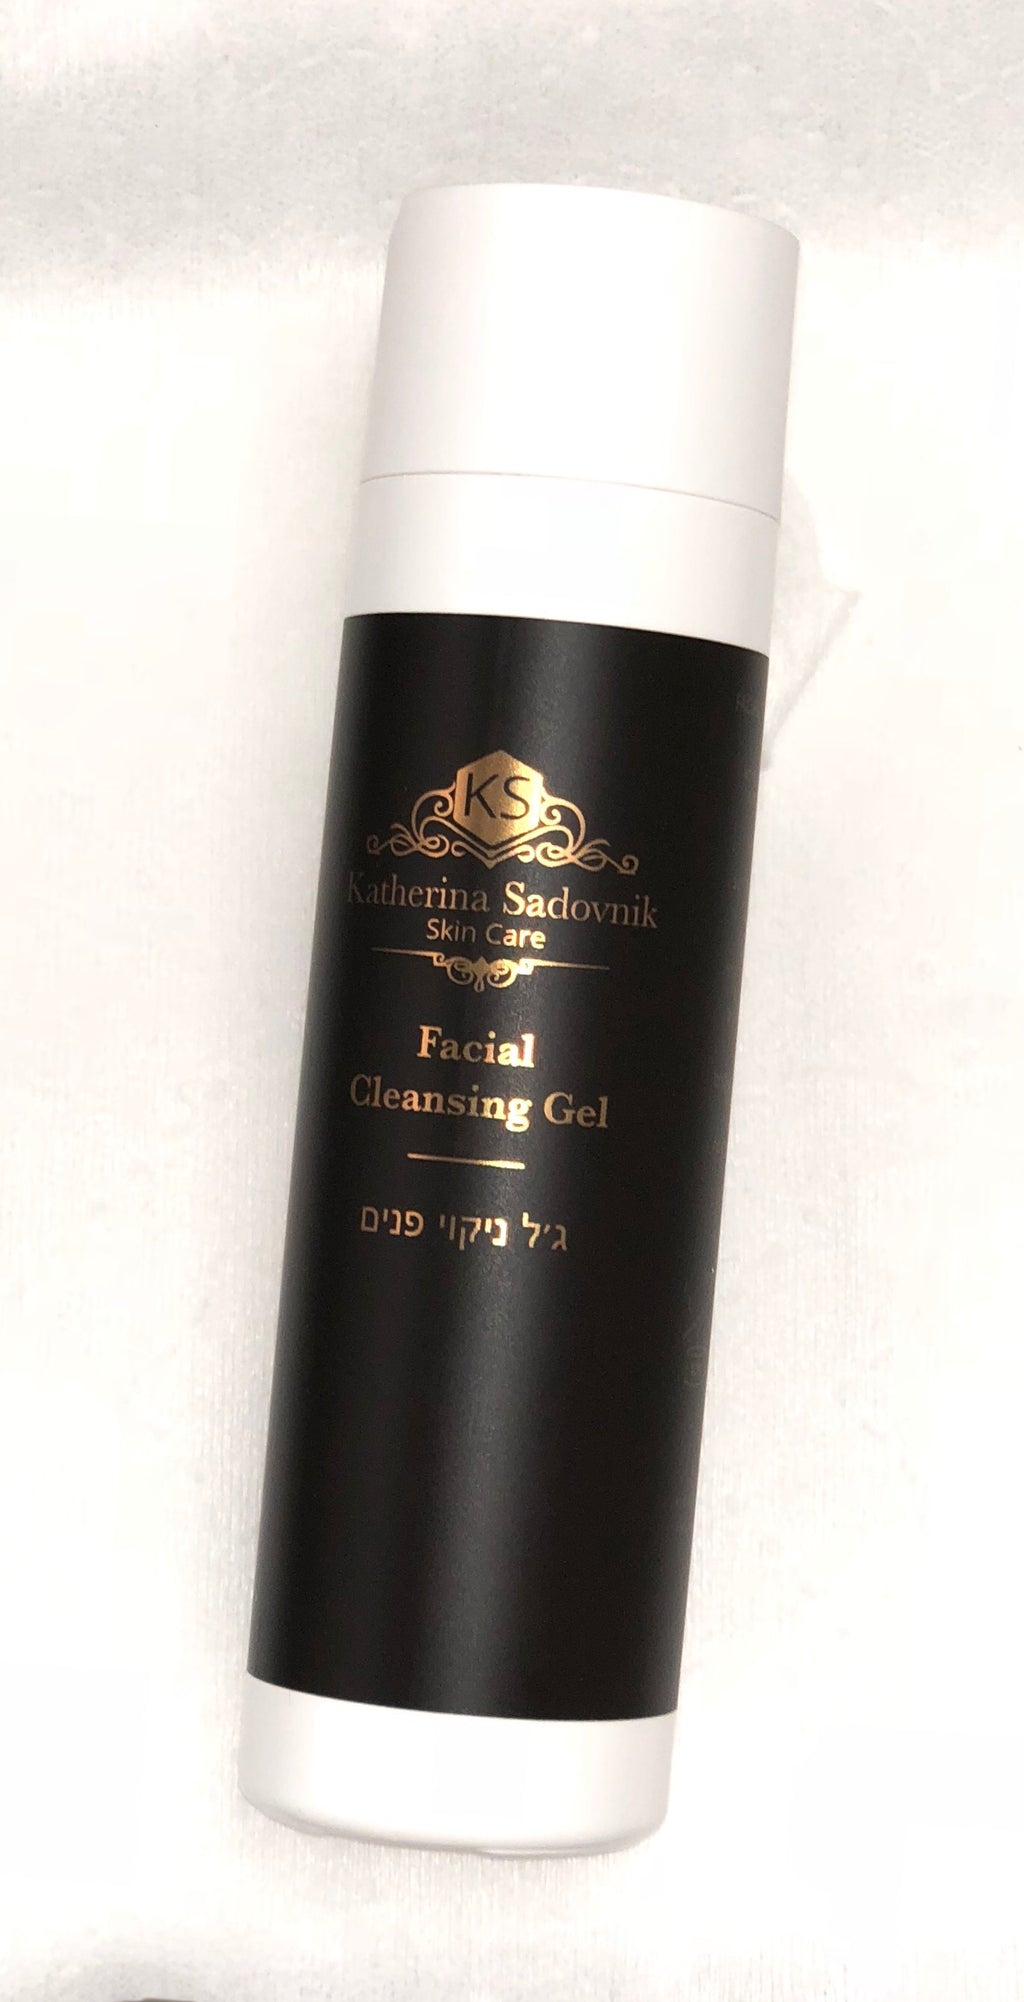 FACIAL CLEANSING GEL, 250ml